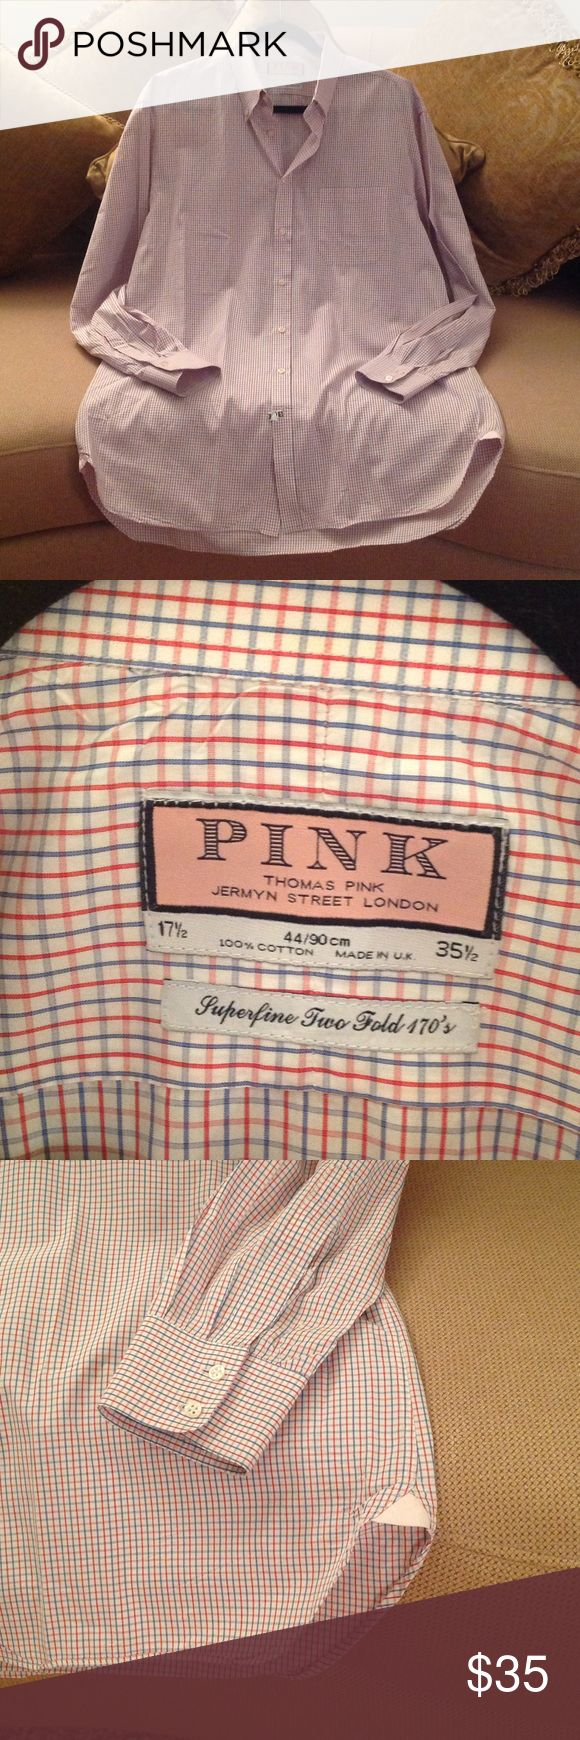 🇬🇧 'Pink' Thomas Pink Jermyn Street - Shirt Men's 'Pink' - Thomas Pink Jermyn Street London. Very well made Business Casual Long sleeved shirt. Size 17.5 / 35.5. Red, Blue and Pink checked. 100% Cotton. Made in the UK. New condition. Worn once, then Drycleaned. Check out the light Pink Diamond insignia on both sides at the hem. Sharp 🇬🇧! Thomas Pink Shirts Casual Button Down Shirts